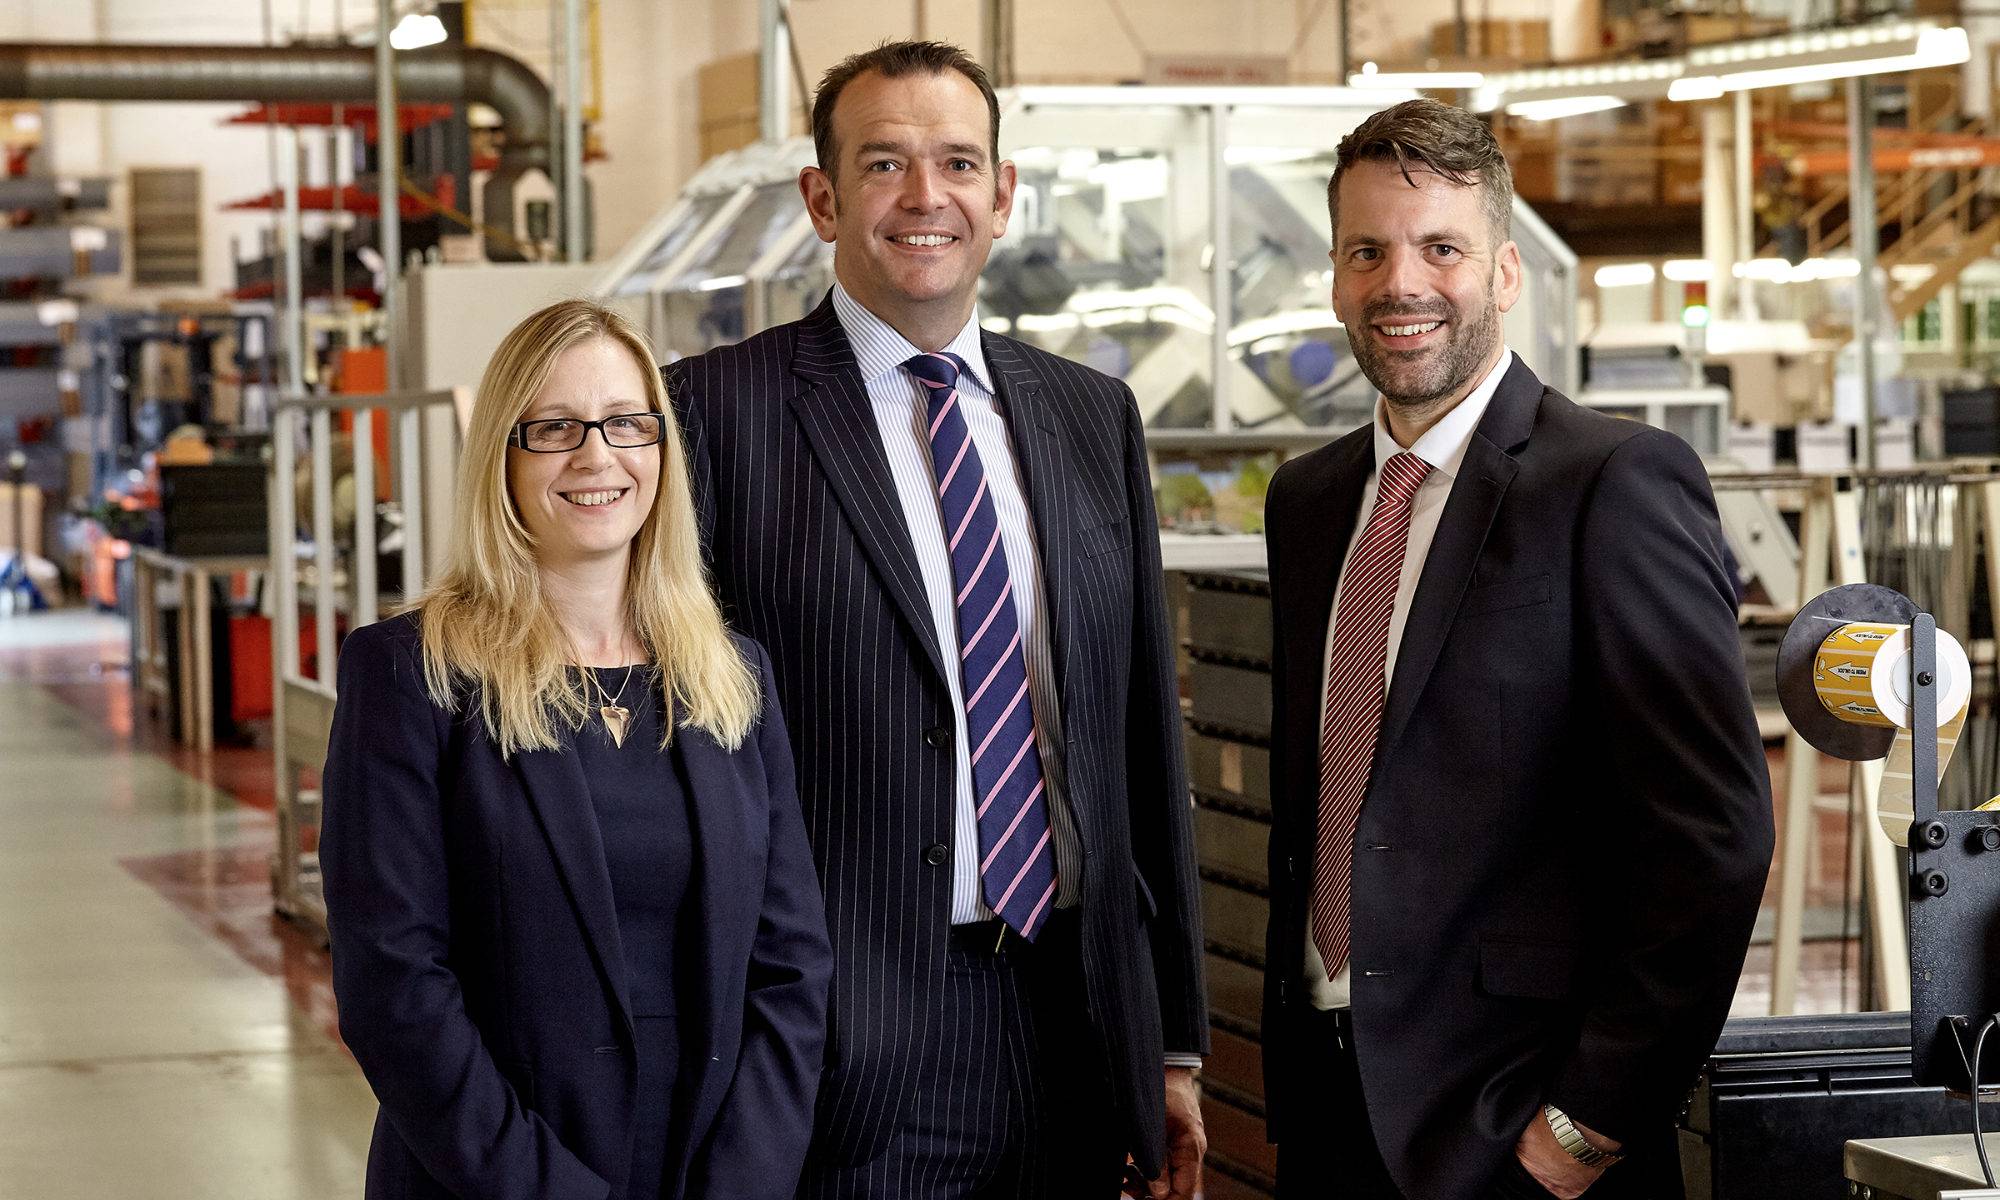 Camloc Management Team 2 2000x1200 - Growth plans as £1.5million investment is confirmed